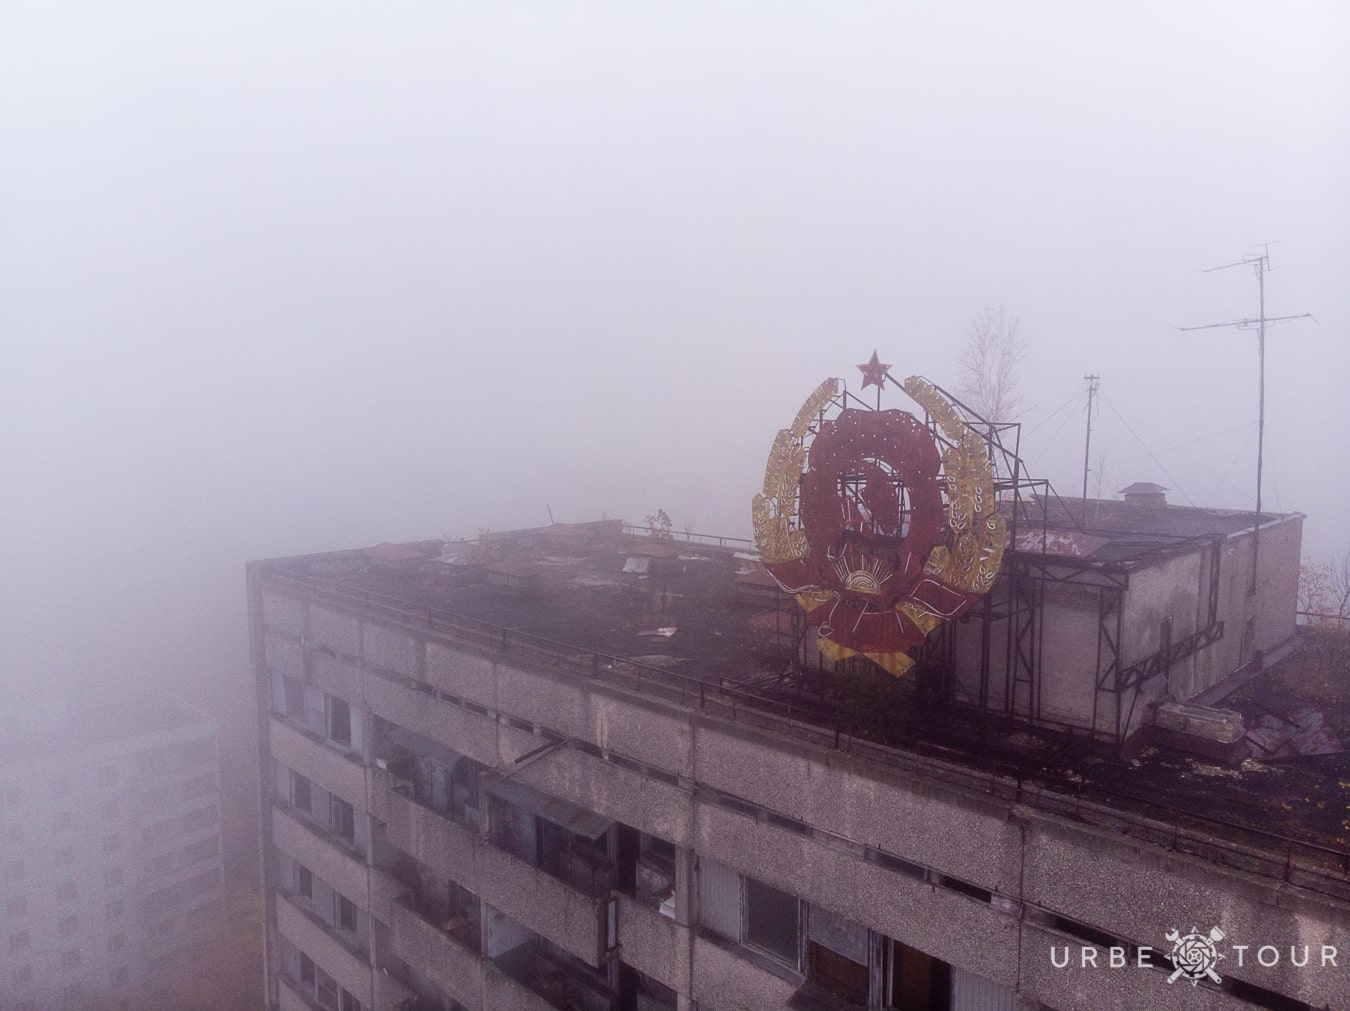 soviet coat of arms on the top of building in Prypiat